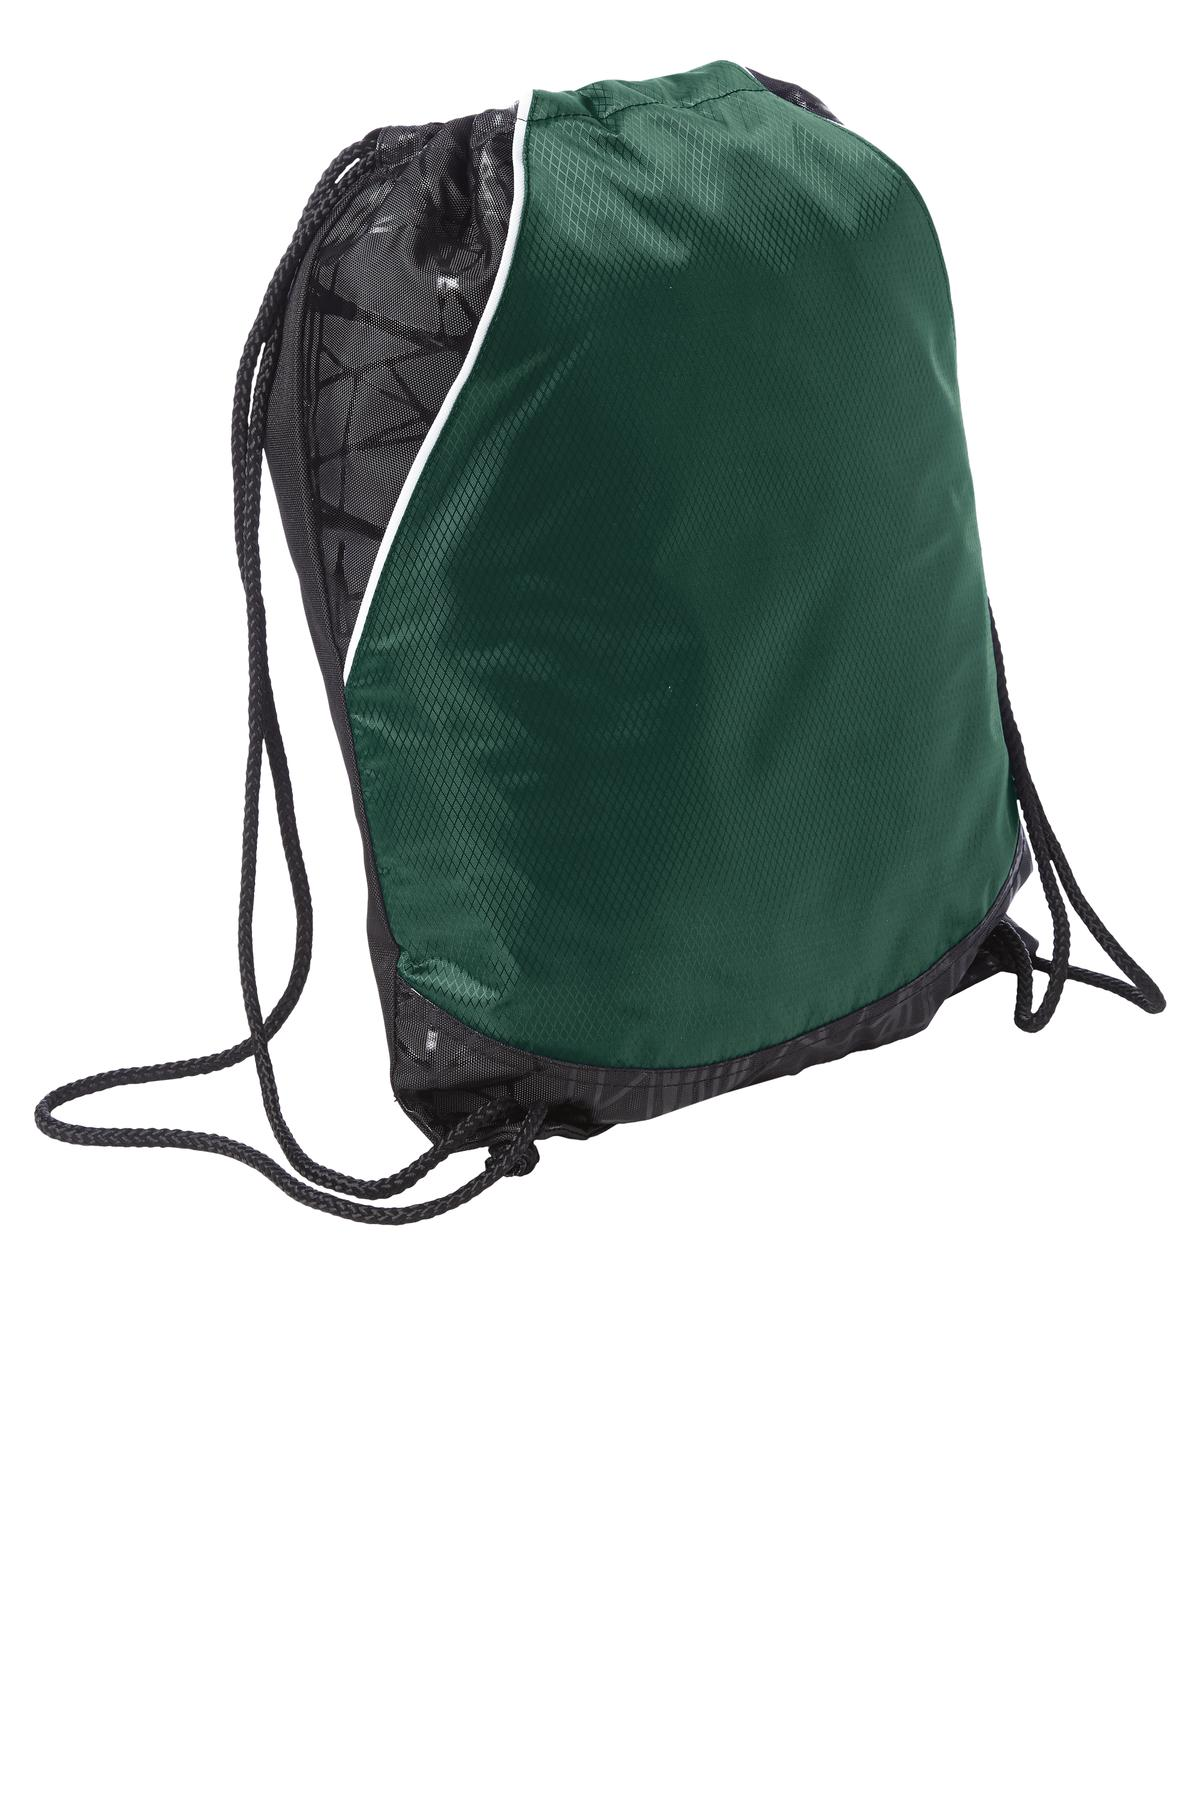 Sport-Tek ®  Rival Cinch Pack. BST600 - Forest Green